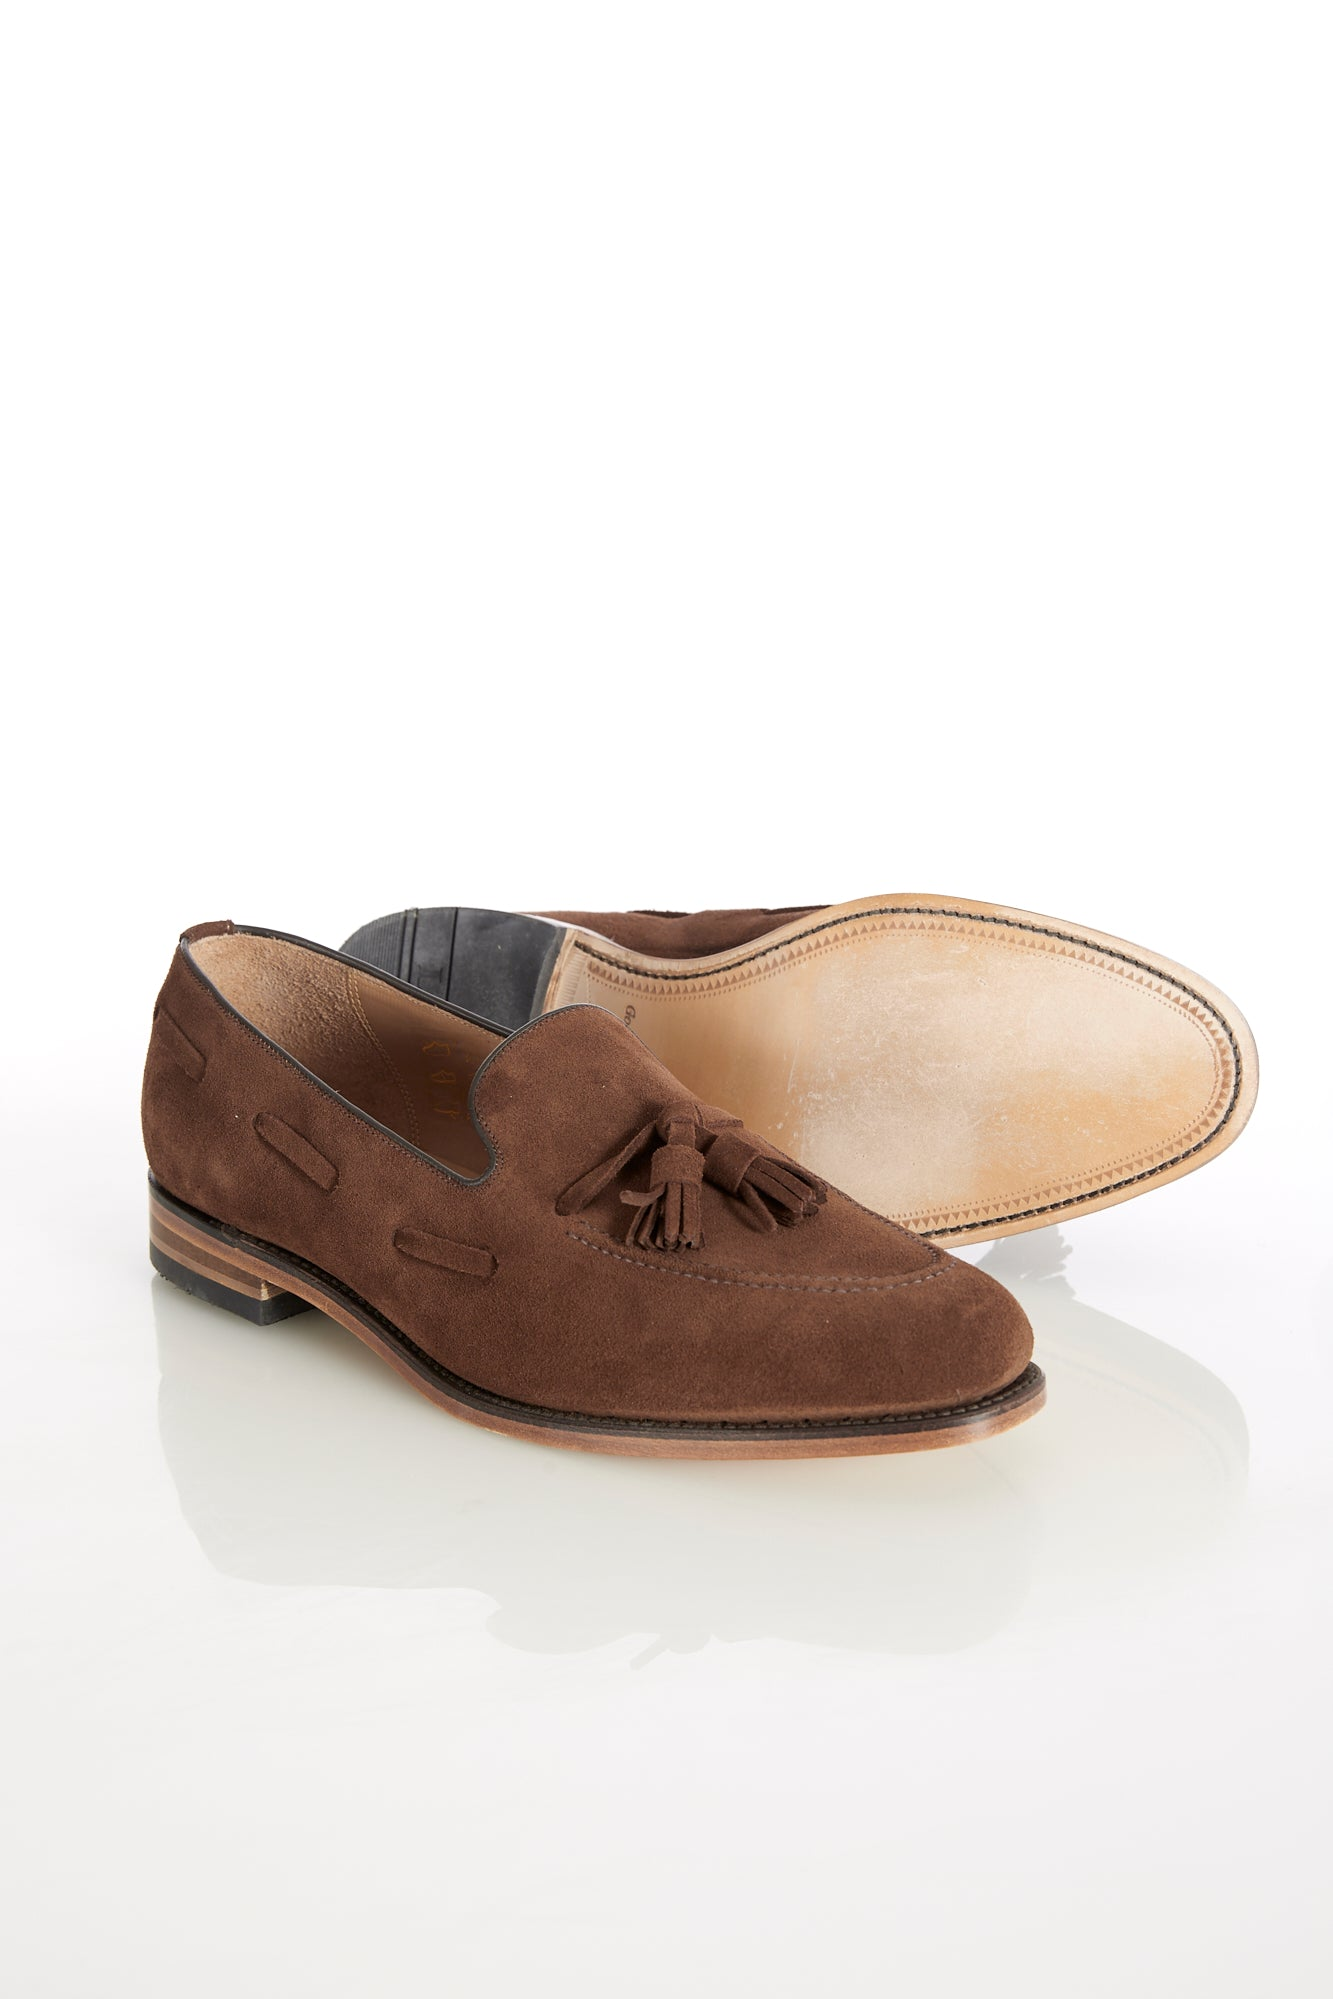 Loake 'Lincoln' Brown Suede Tassel Loafer